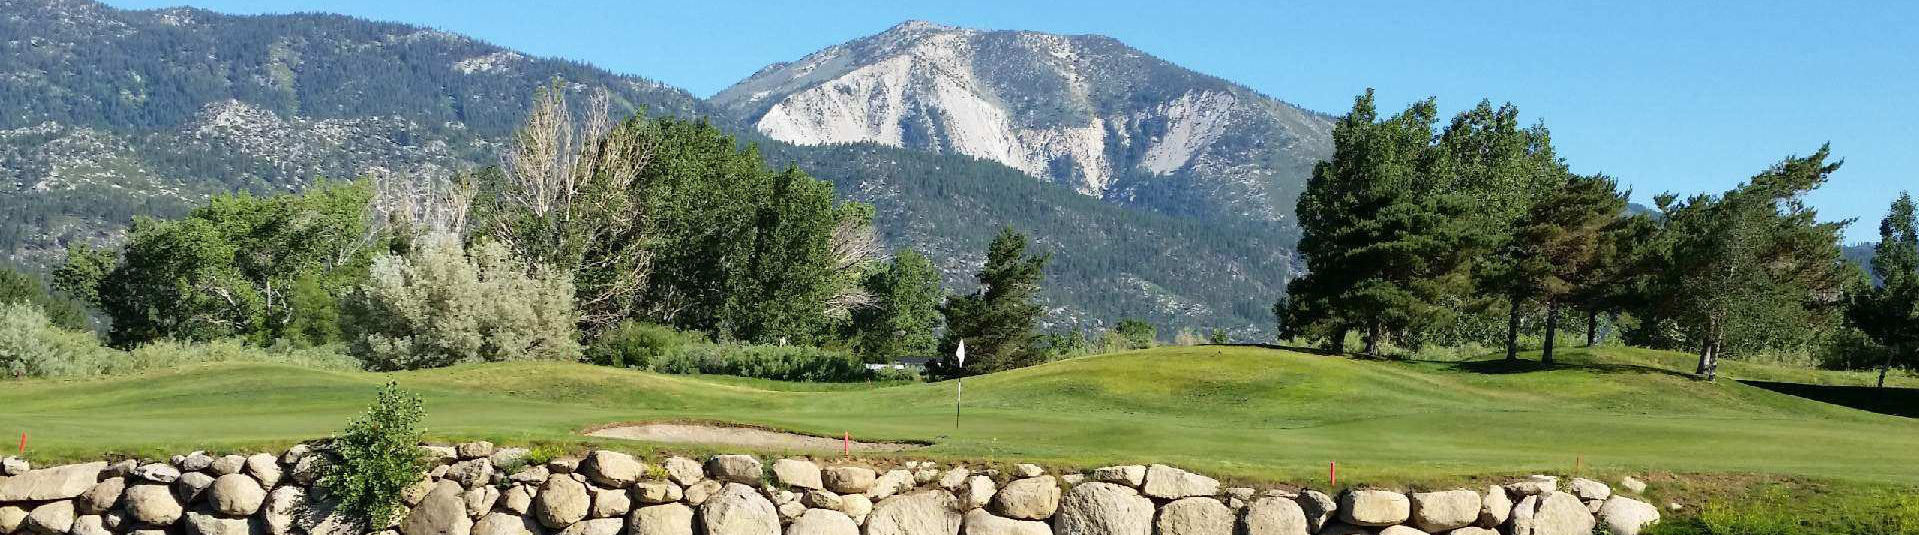 The mountain backdrop at Toiyabe Golf Club